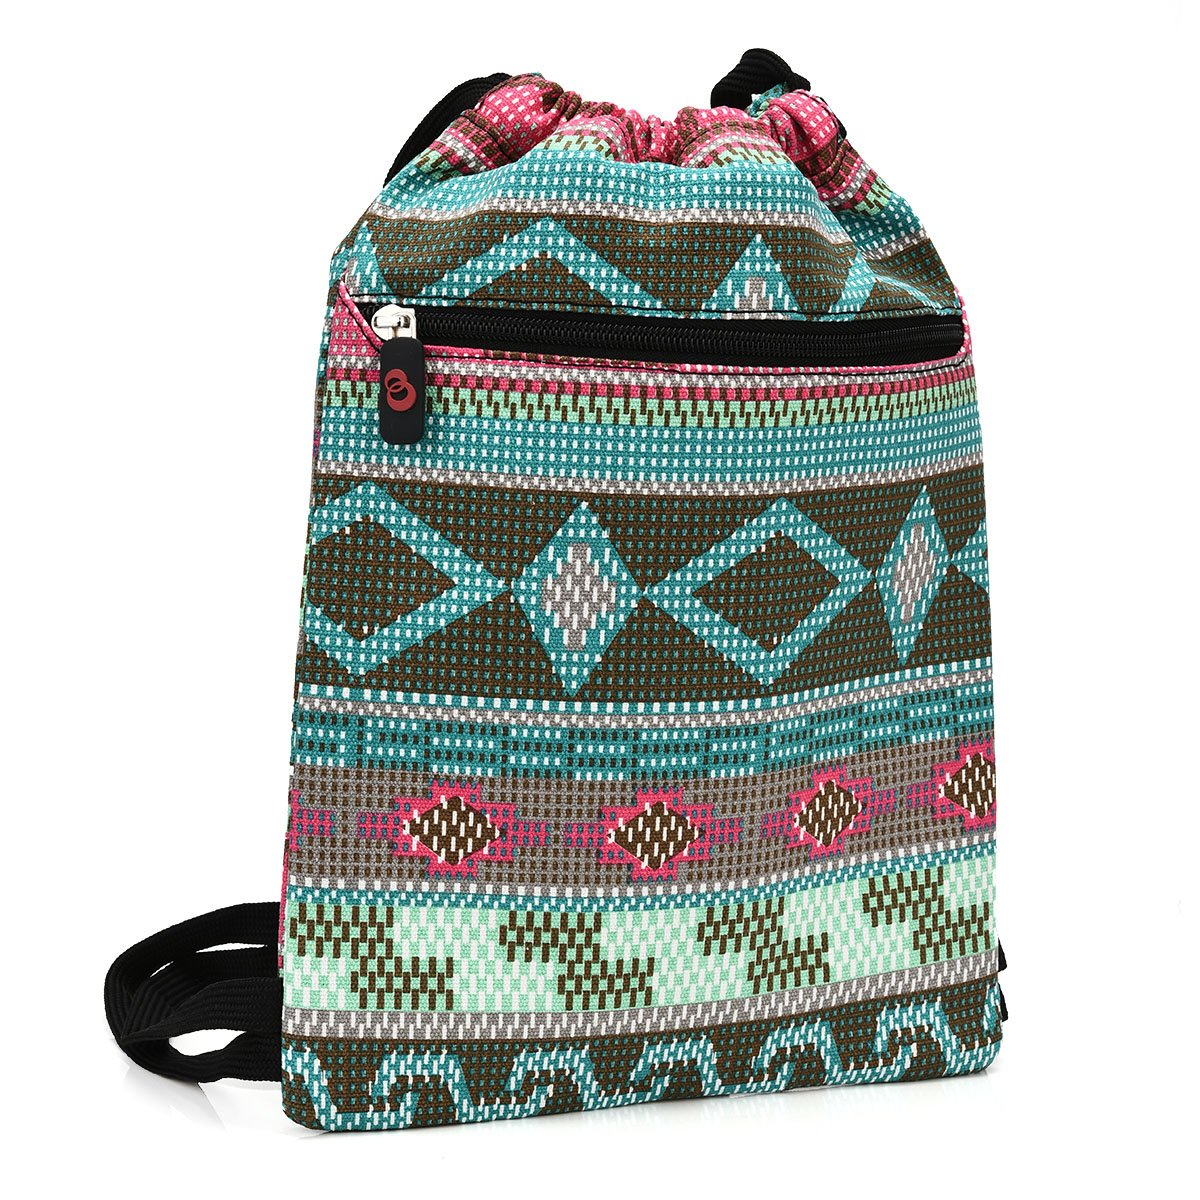 Bohemian Backpack Drawstring Bag Tote Case